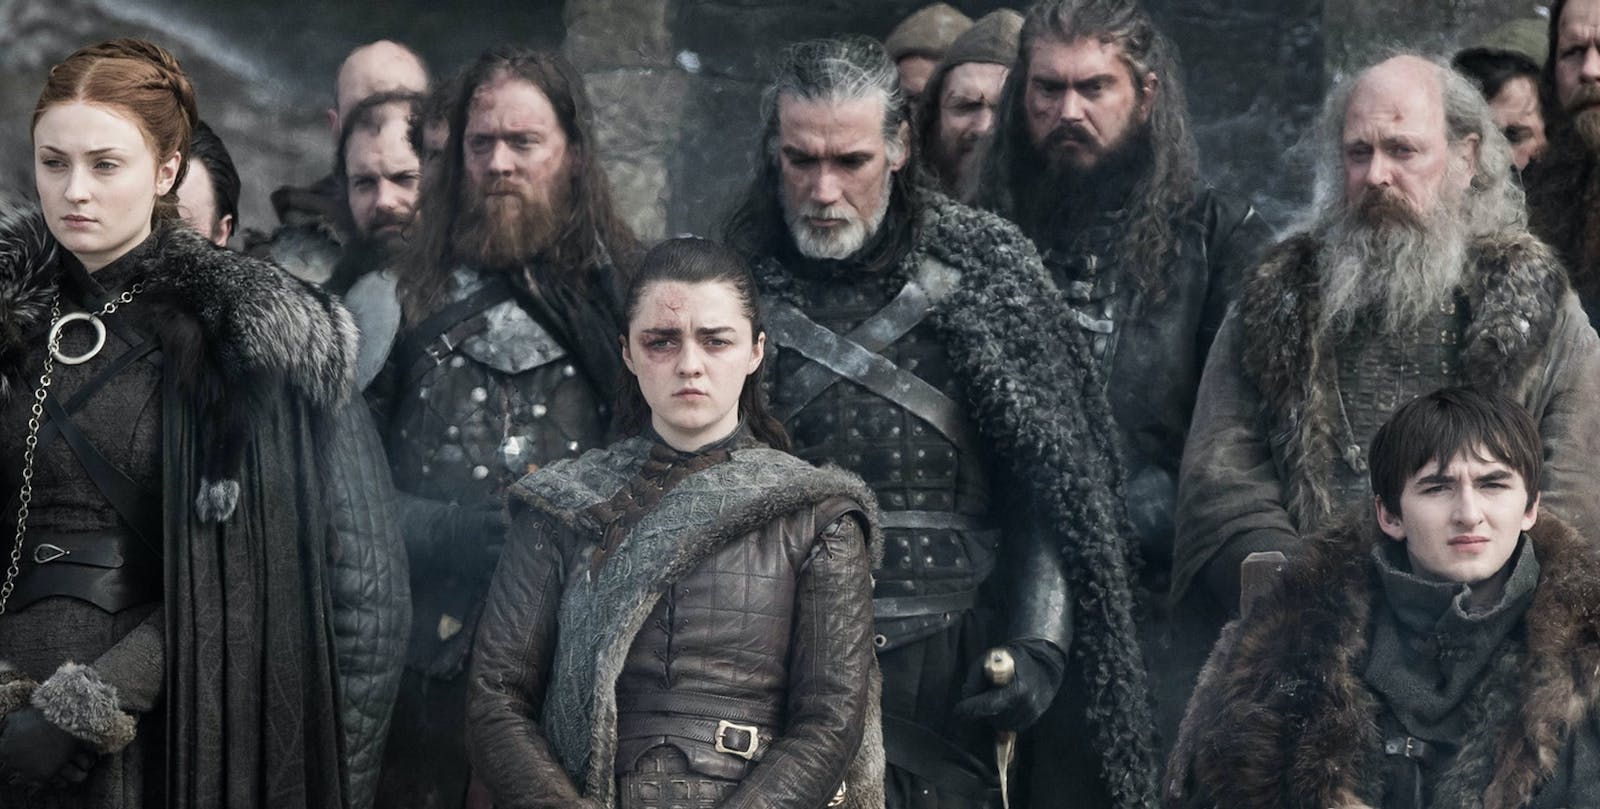 Game Of Thrones Season 8 Episode 4 The Last Of The Stark